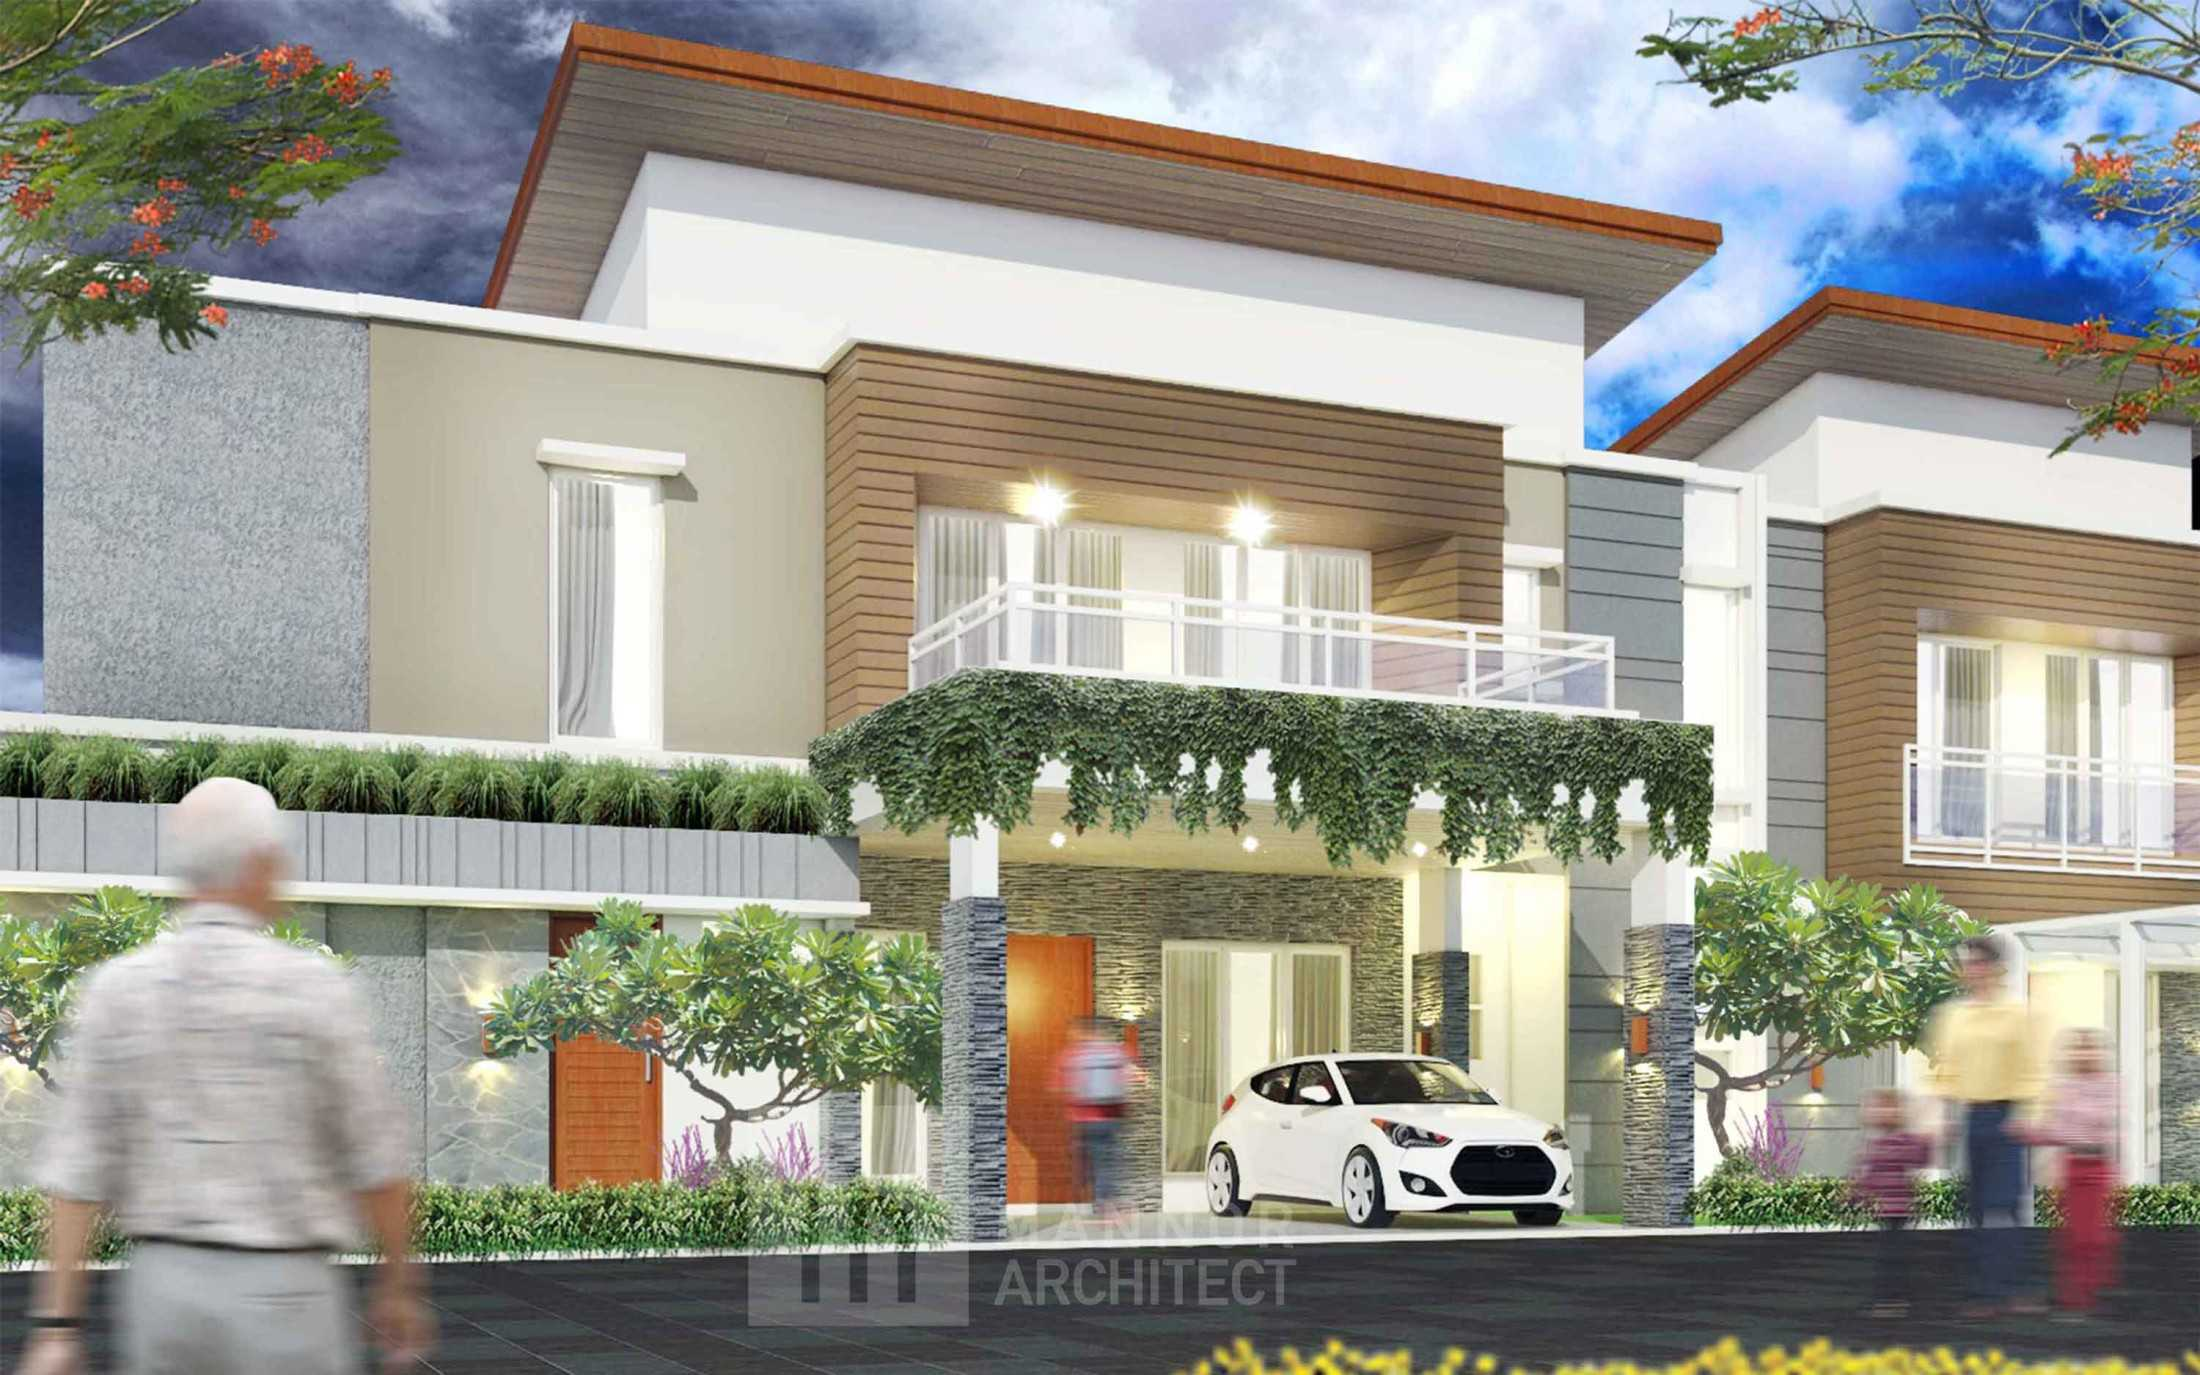 Mannor Architect Green Hills Project Padang - Sumatera Barat Padang, Kota Padang, Sumatera Barat, Indonesia Padang, Kota Padang, Sumatera Barat, Indonesia Mannor-Architect-Green-Hills-Project-Padang-Sumatera-Barat  57432